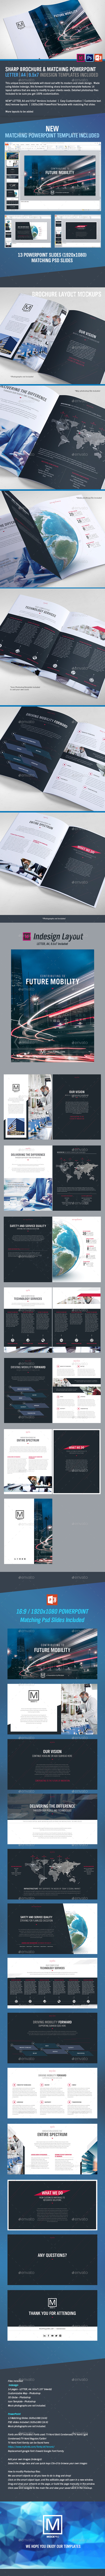 Sharp Modern Brochure and PowerPoint - Corporate Brochures